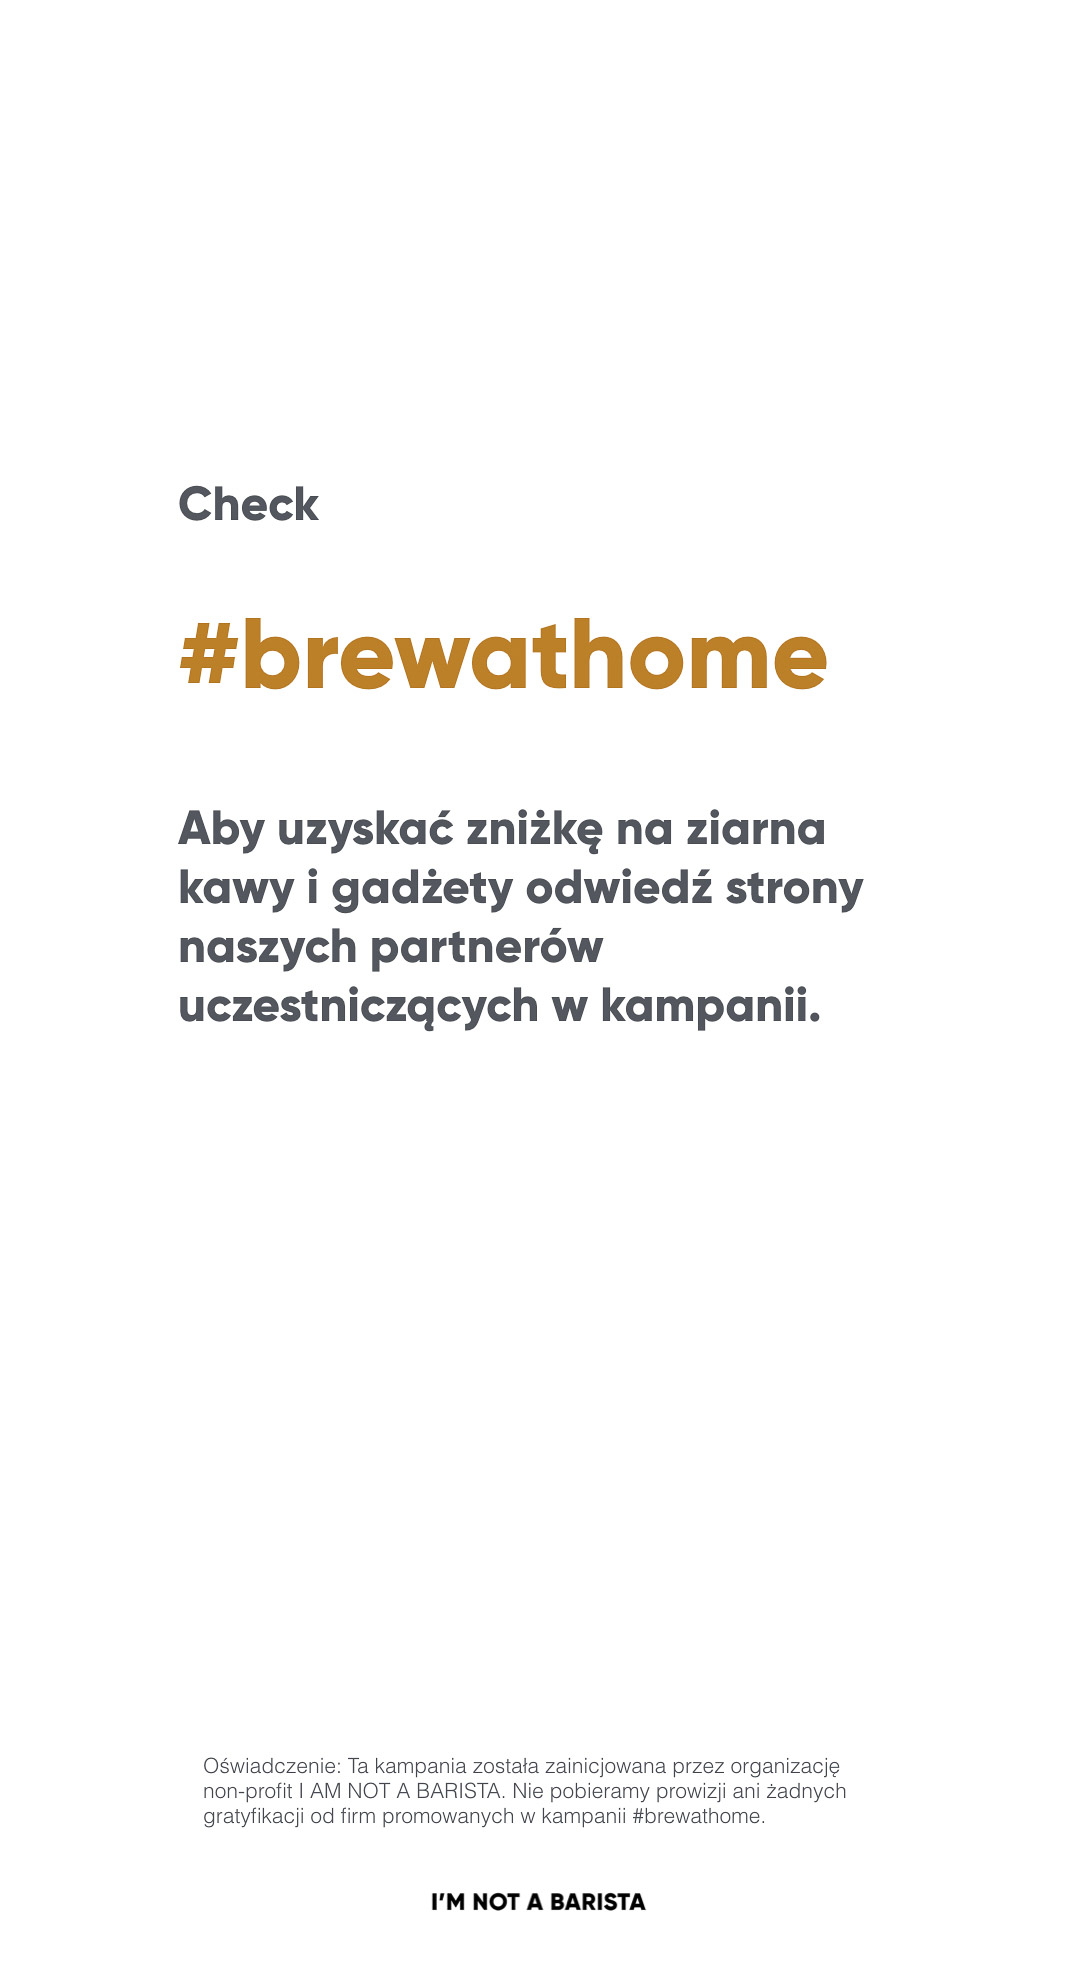 brewathome polish.003